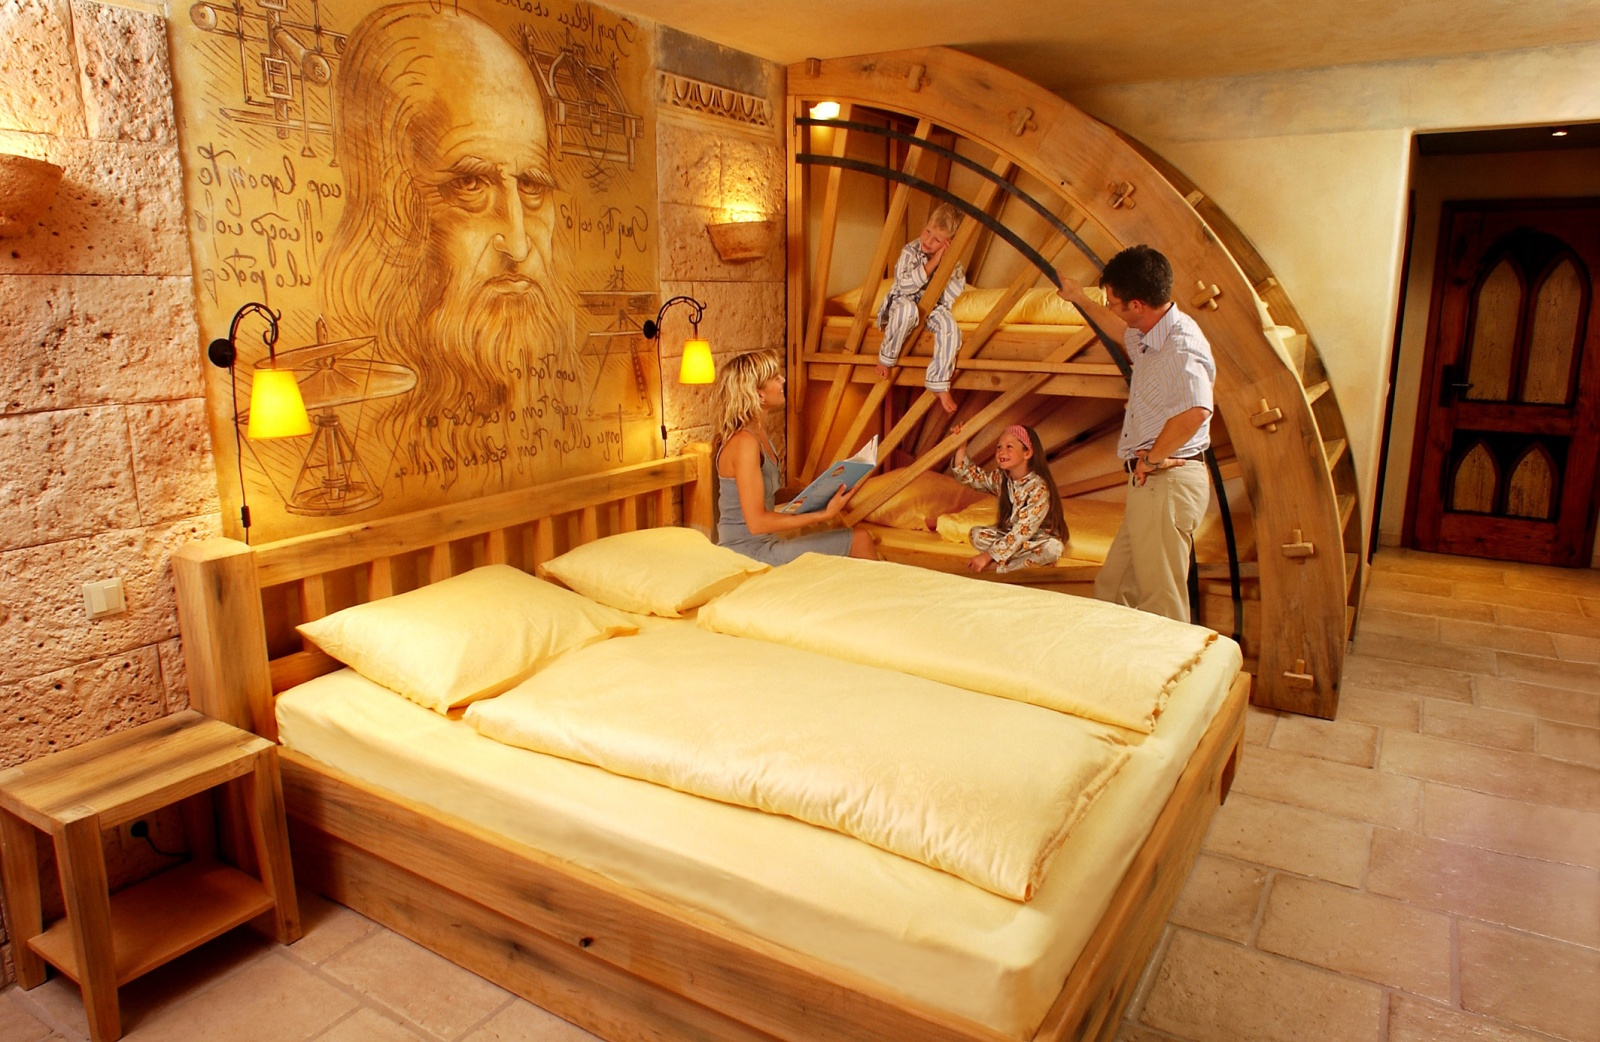 4 star superior hotel colosseo in europa park - Hotel colosseo europa park ...